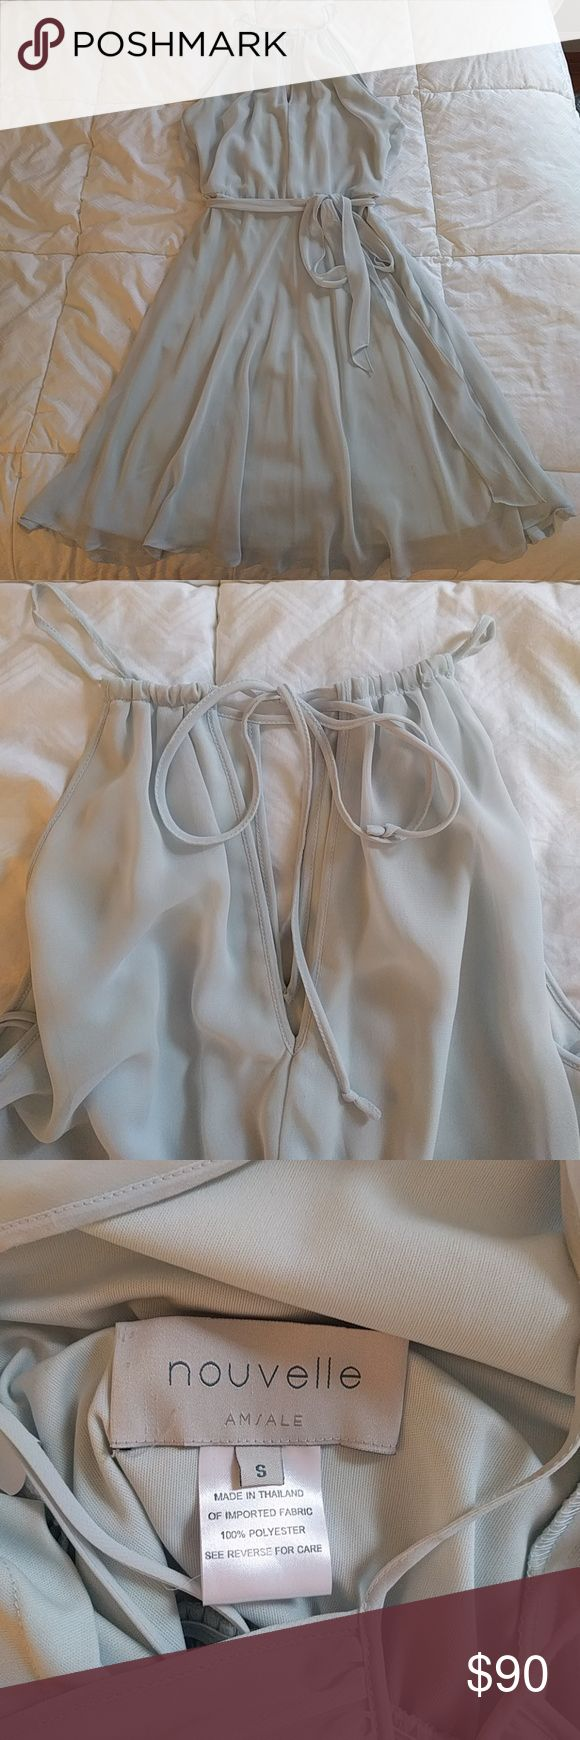 Nouvelle AMSALE halter keyhole neck Chiffon Dress Beautiful delicate dress with keyhole bodice and halter that ties in the back. A waist defining sash, A line, flattering. Color: cloud. Perfect for a bridesmaid looking for a soft blue dress. Wears with ease, no zippers Nouvelle Amsale Dresses